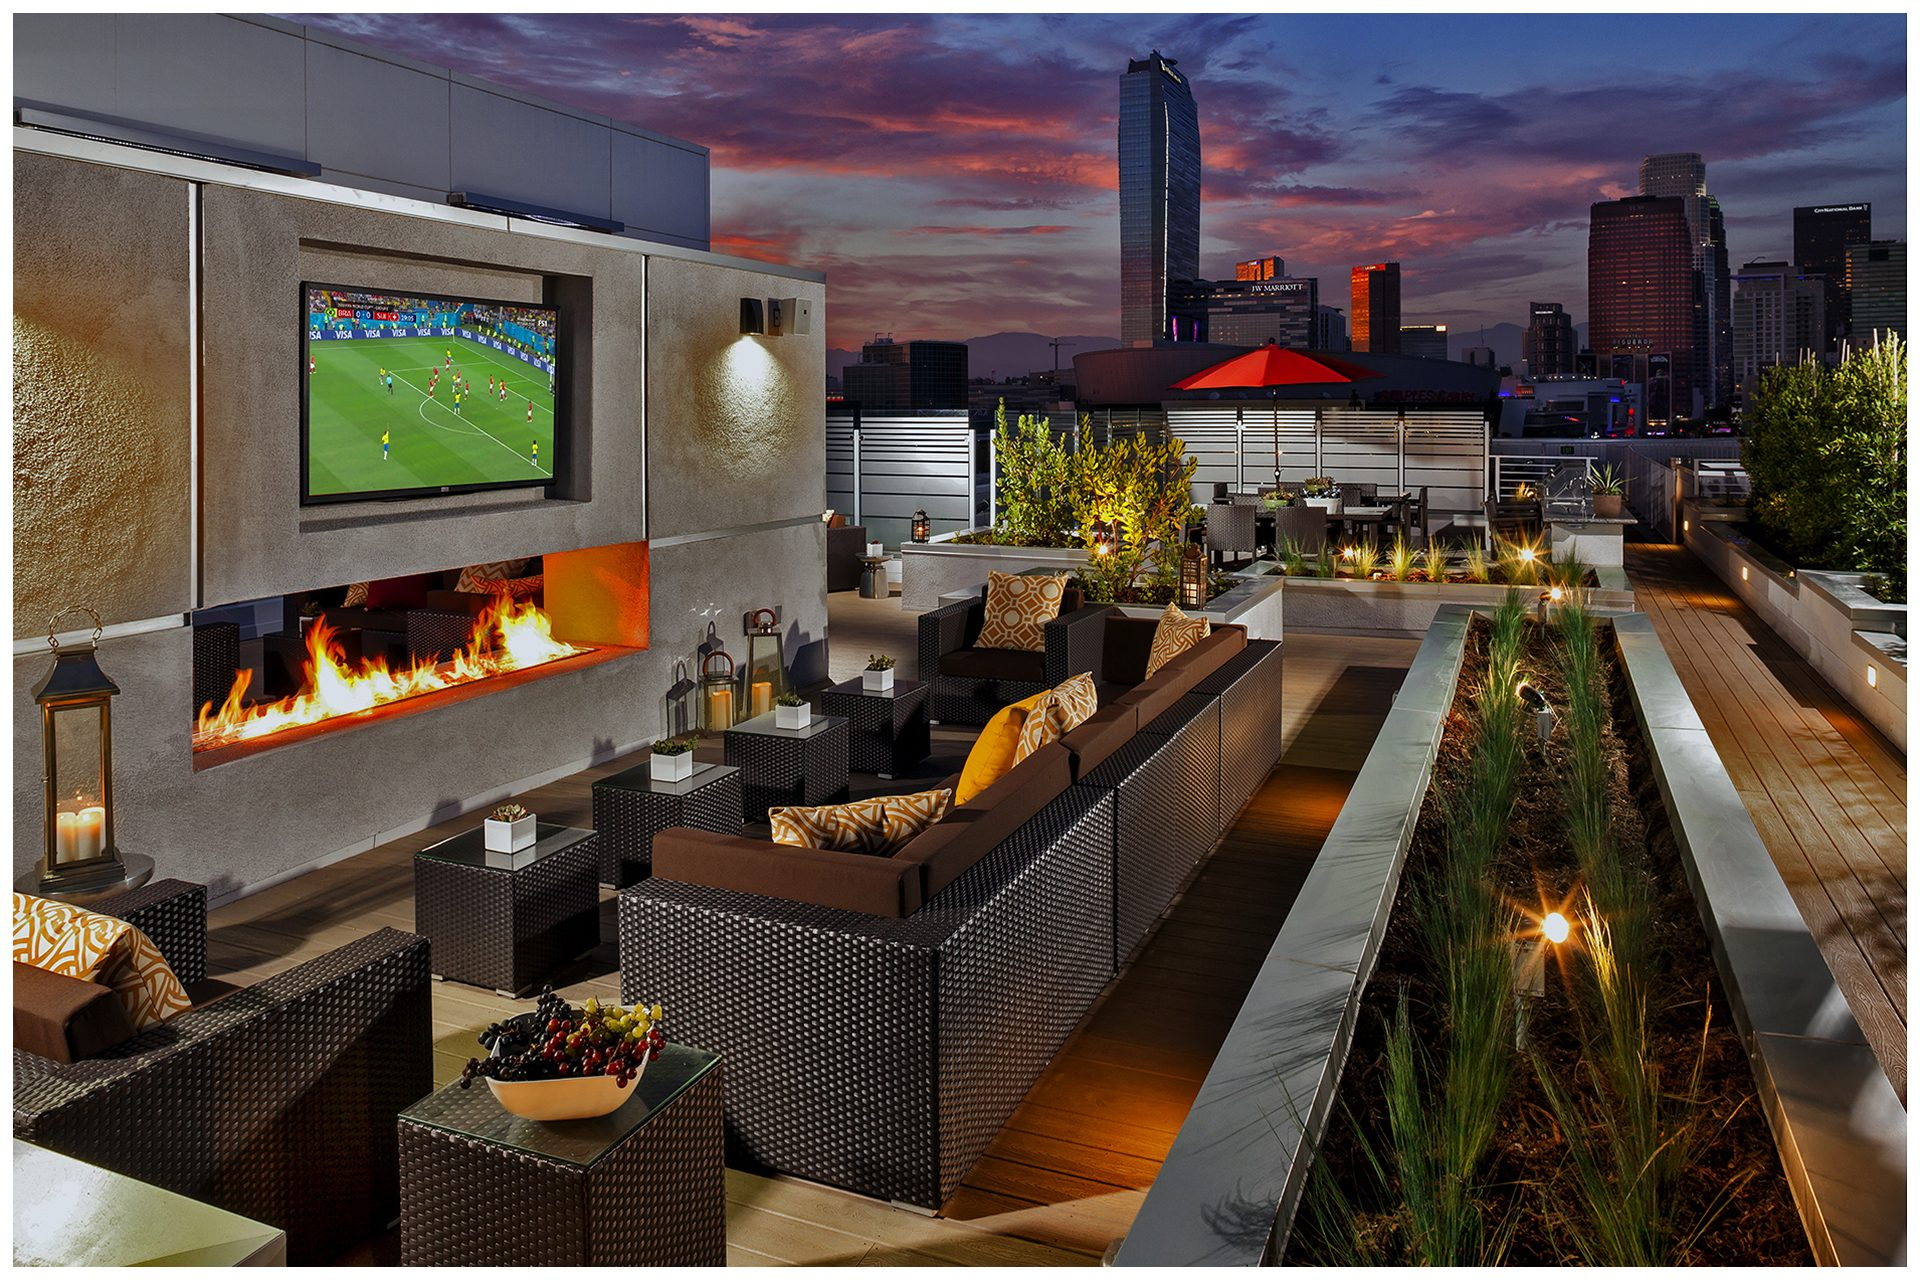 ROOFTOP/SKY DECK PROVISIONS Roof-top Audio Video & Enterprise WiFi; Audio & TV provisions controlled via a local iPad and remotely from leasing office.